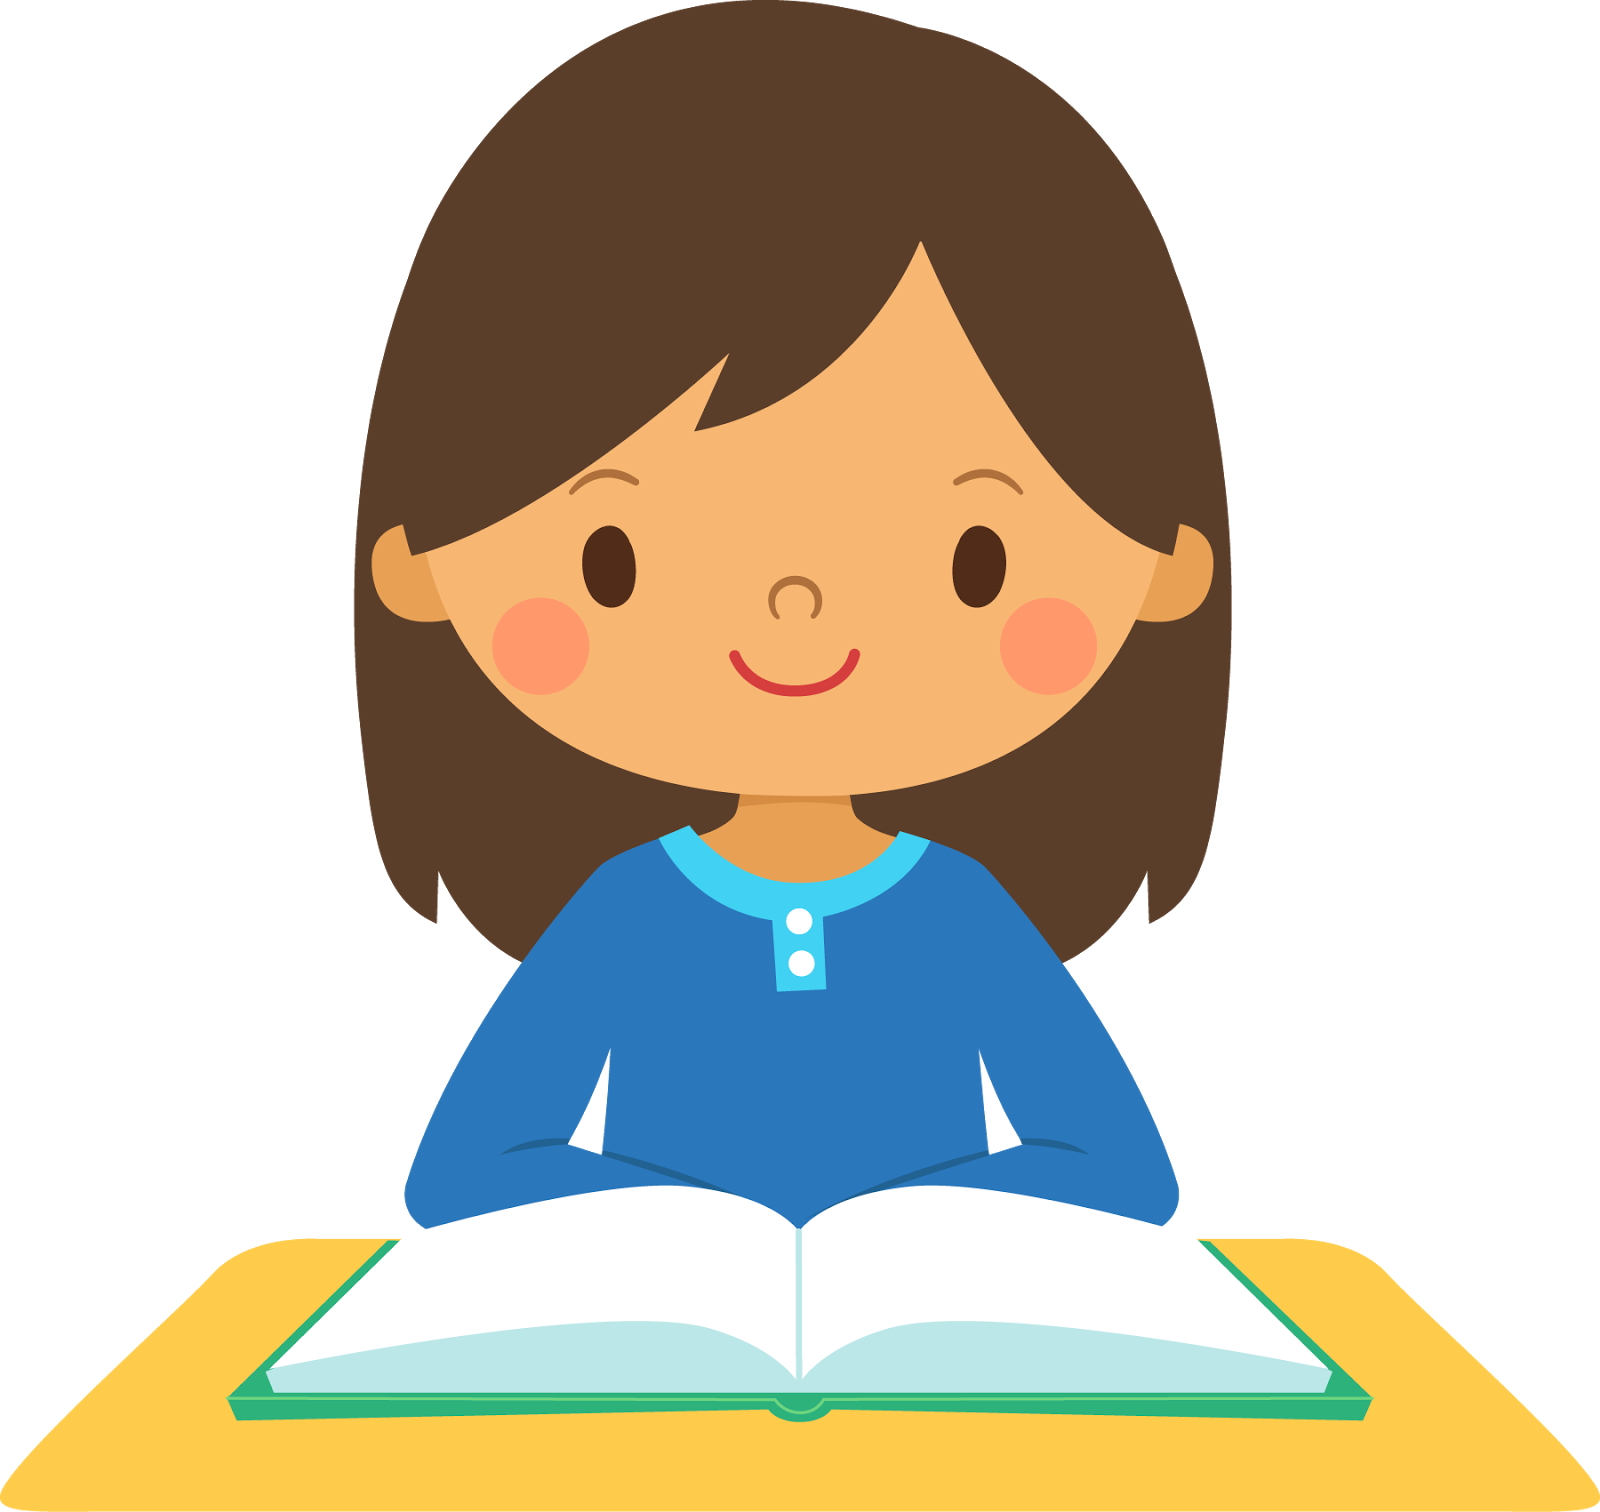 library Hear clipart girl. Smiling at a desk